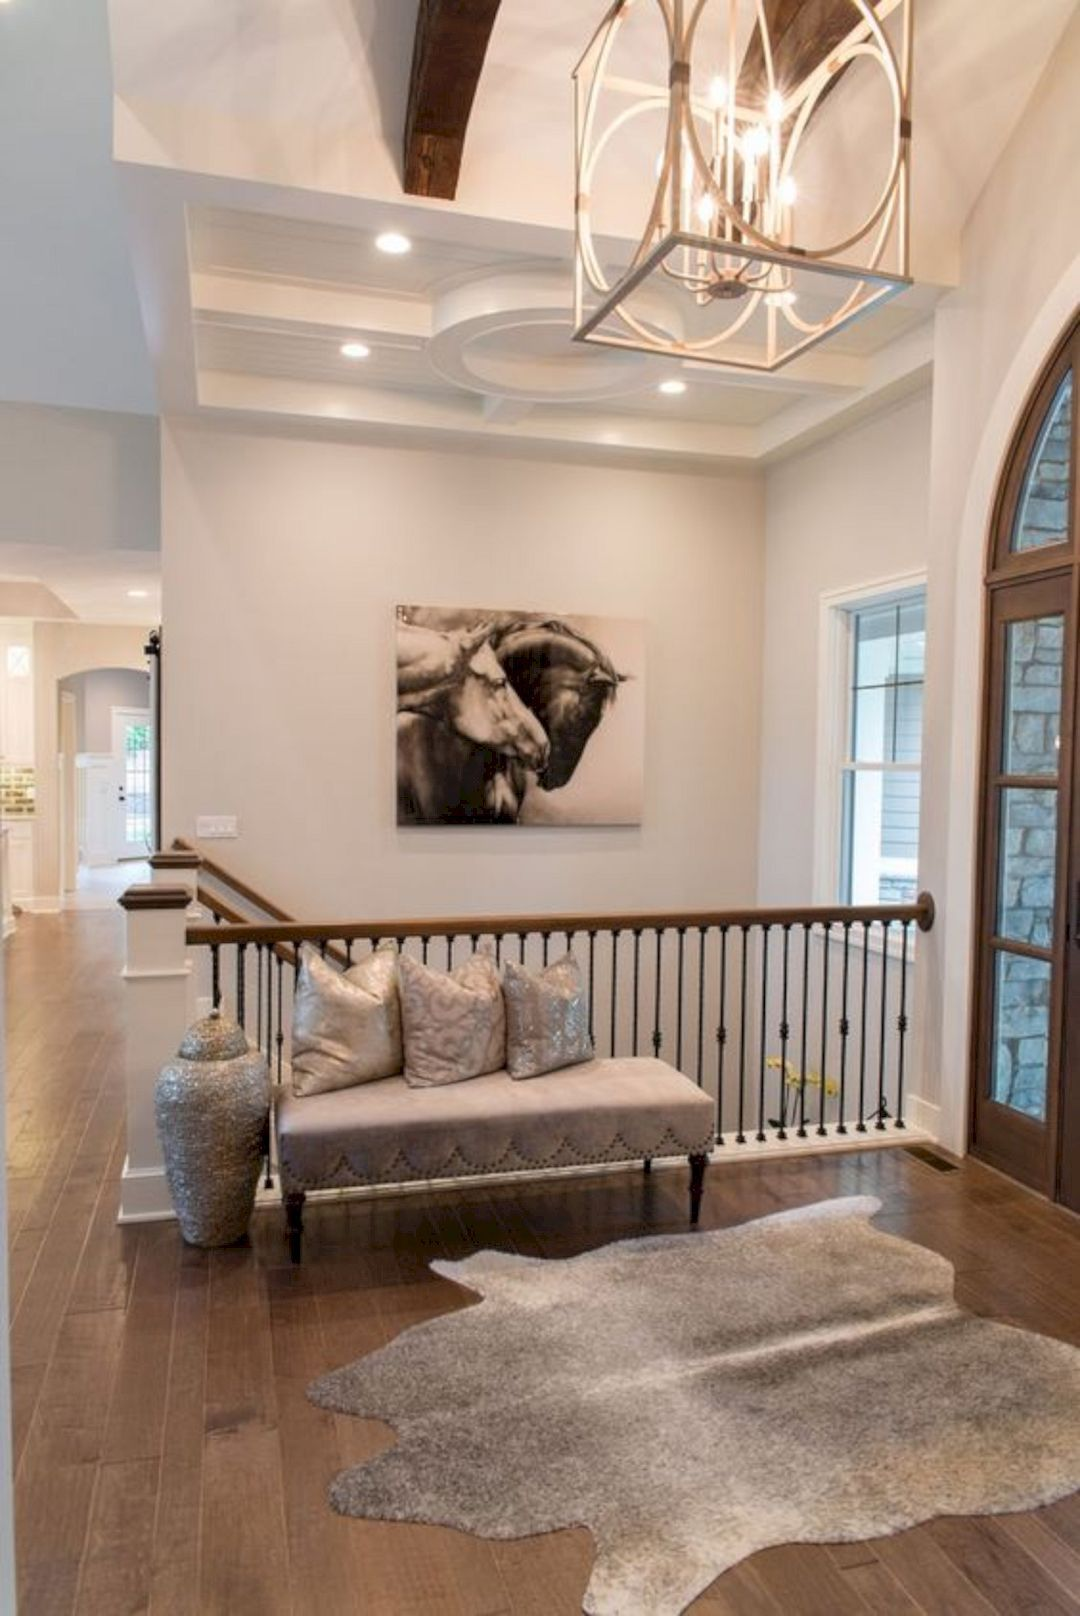 15 Top Raised Ranch Interior Design Ideas To Steal Home House Design Raised Ranch Remodel